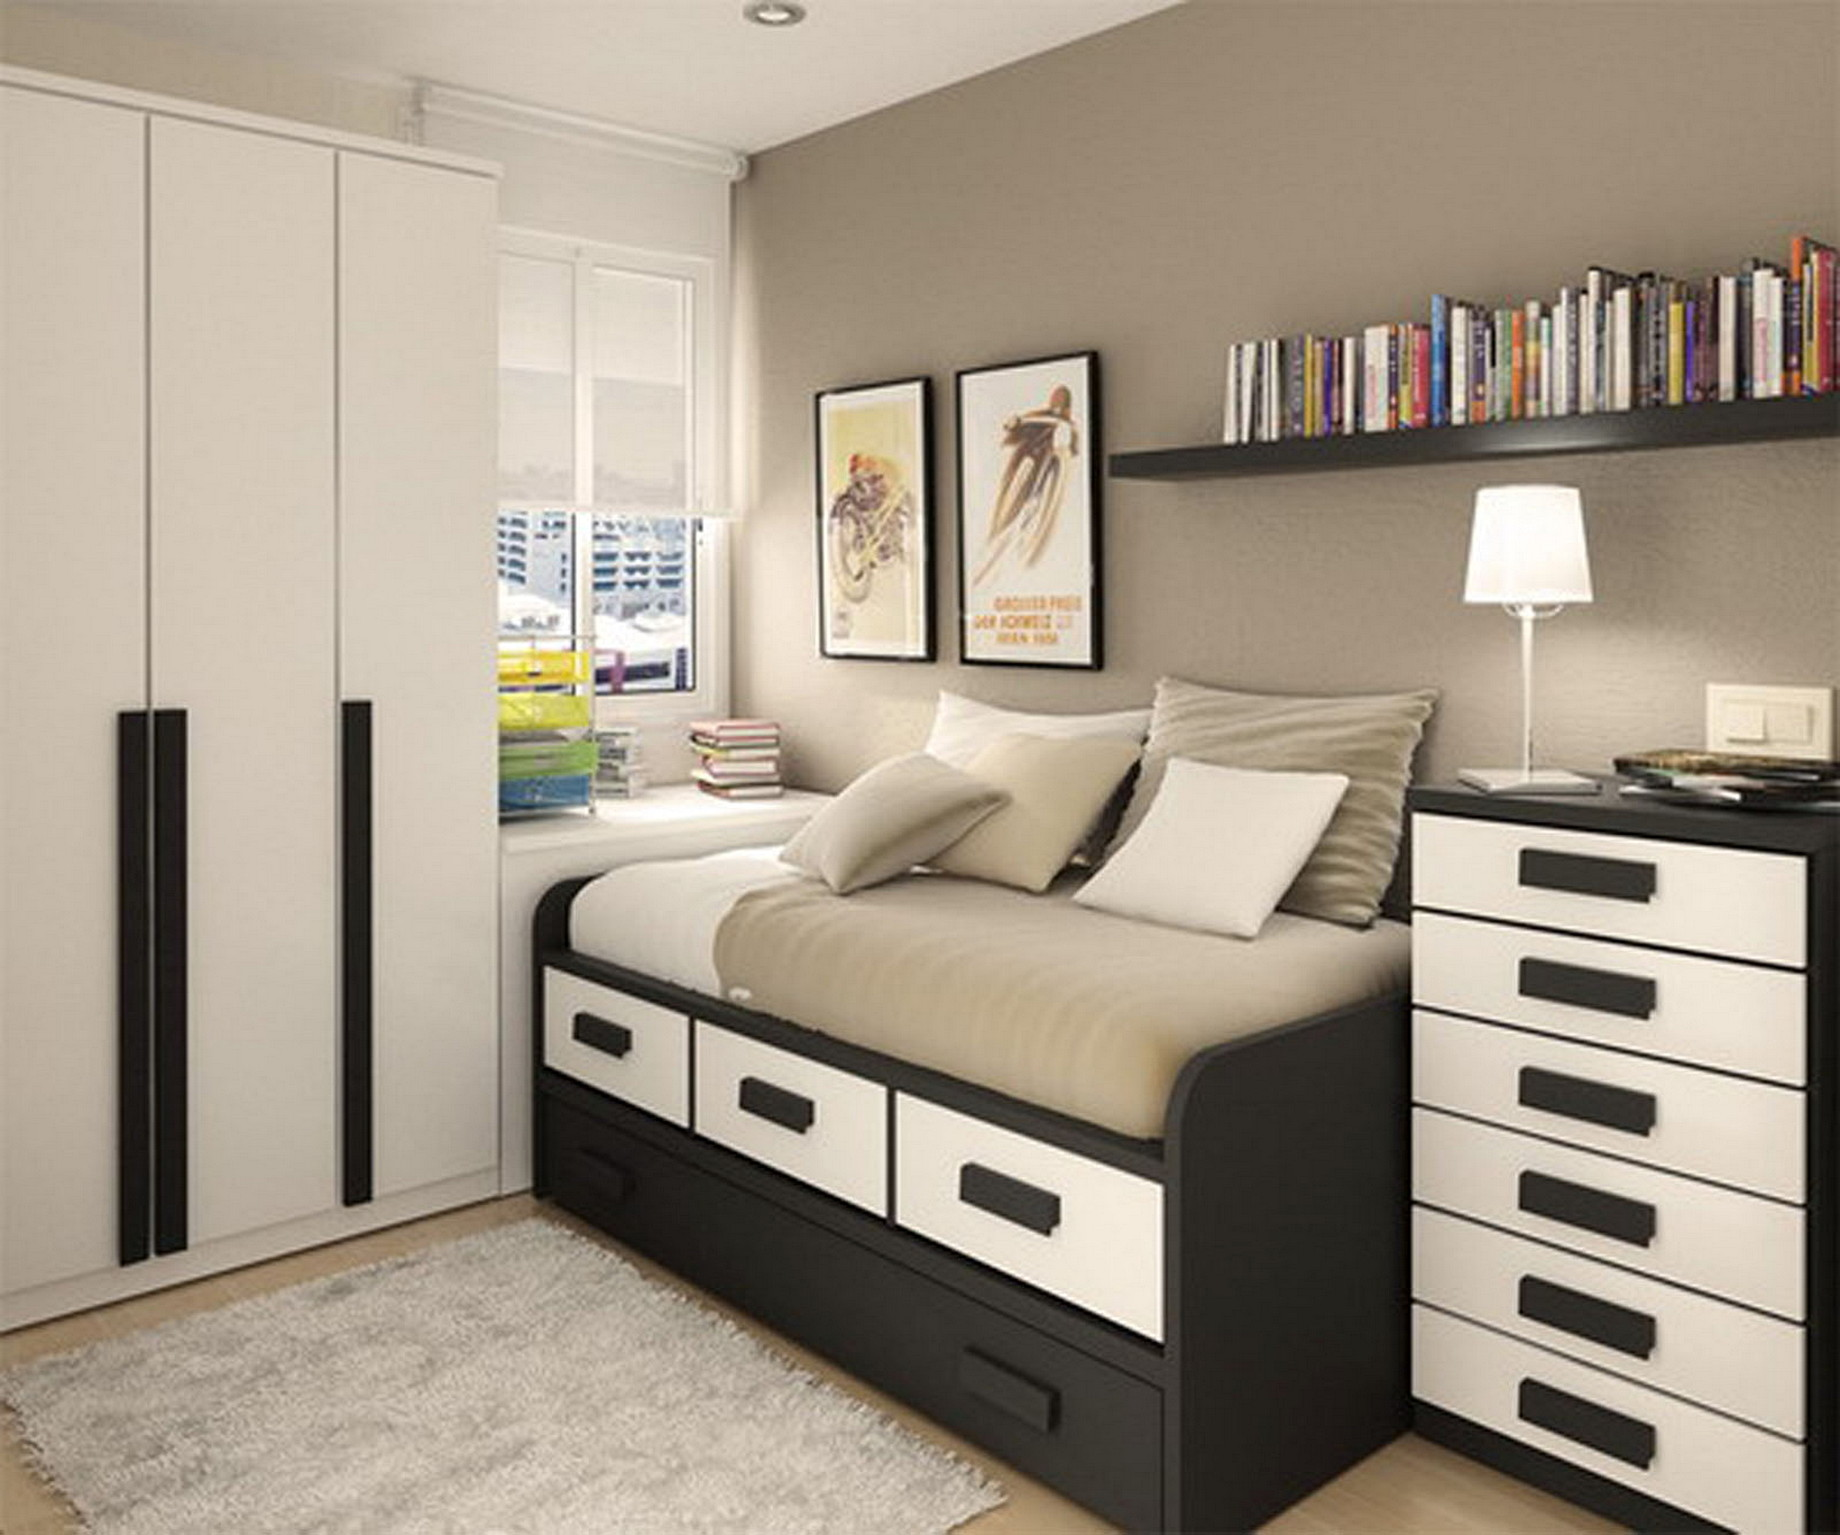 Storage Solutions For Small Spaces Drawer For Bedroom Design With Narrow Space Architecturein